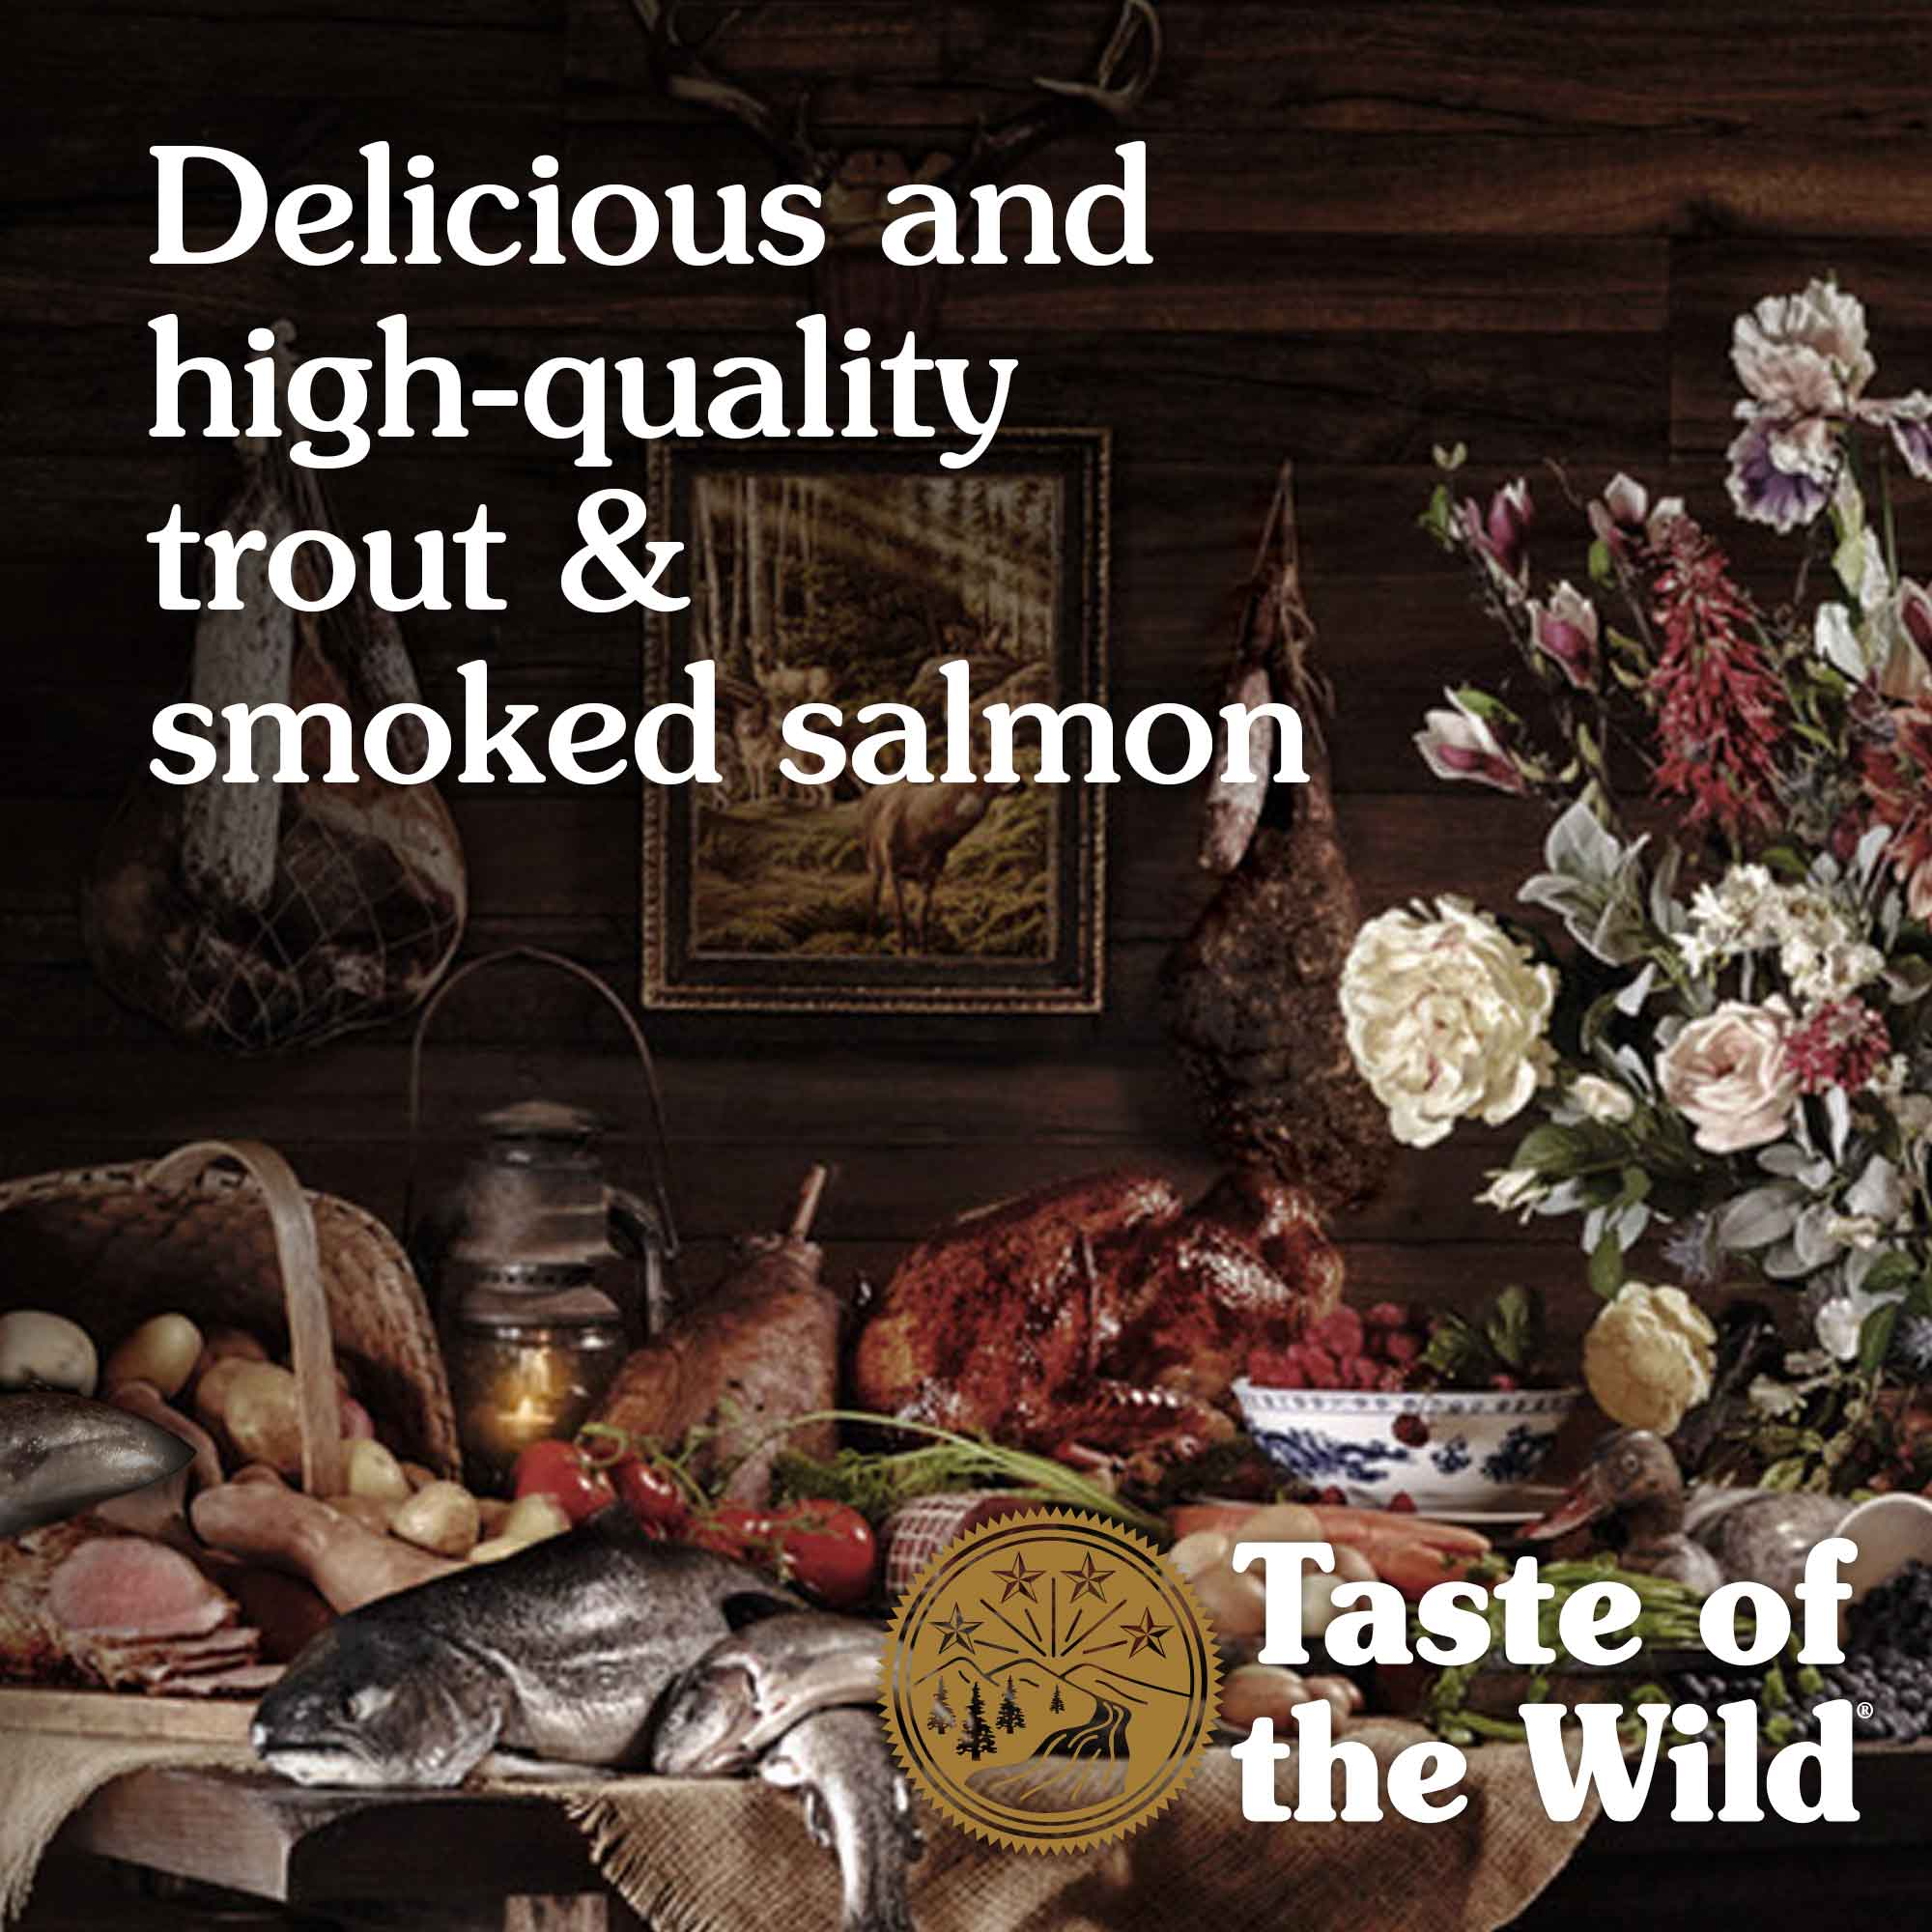 Delicious and high-quality trout & smoked salmon